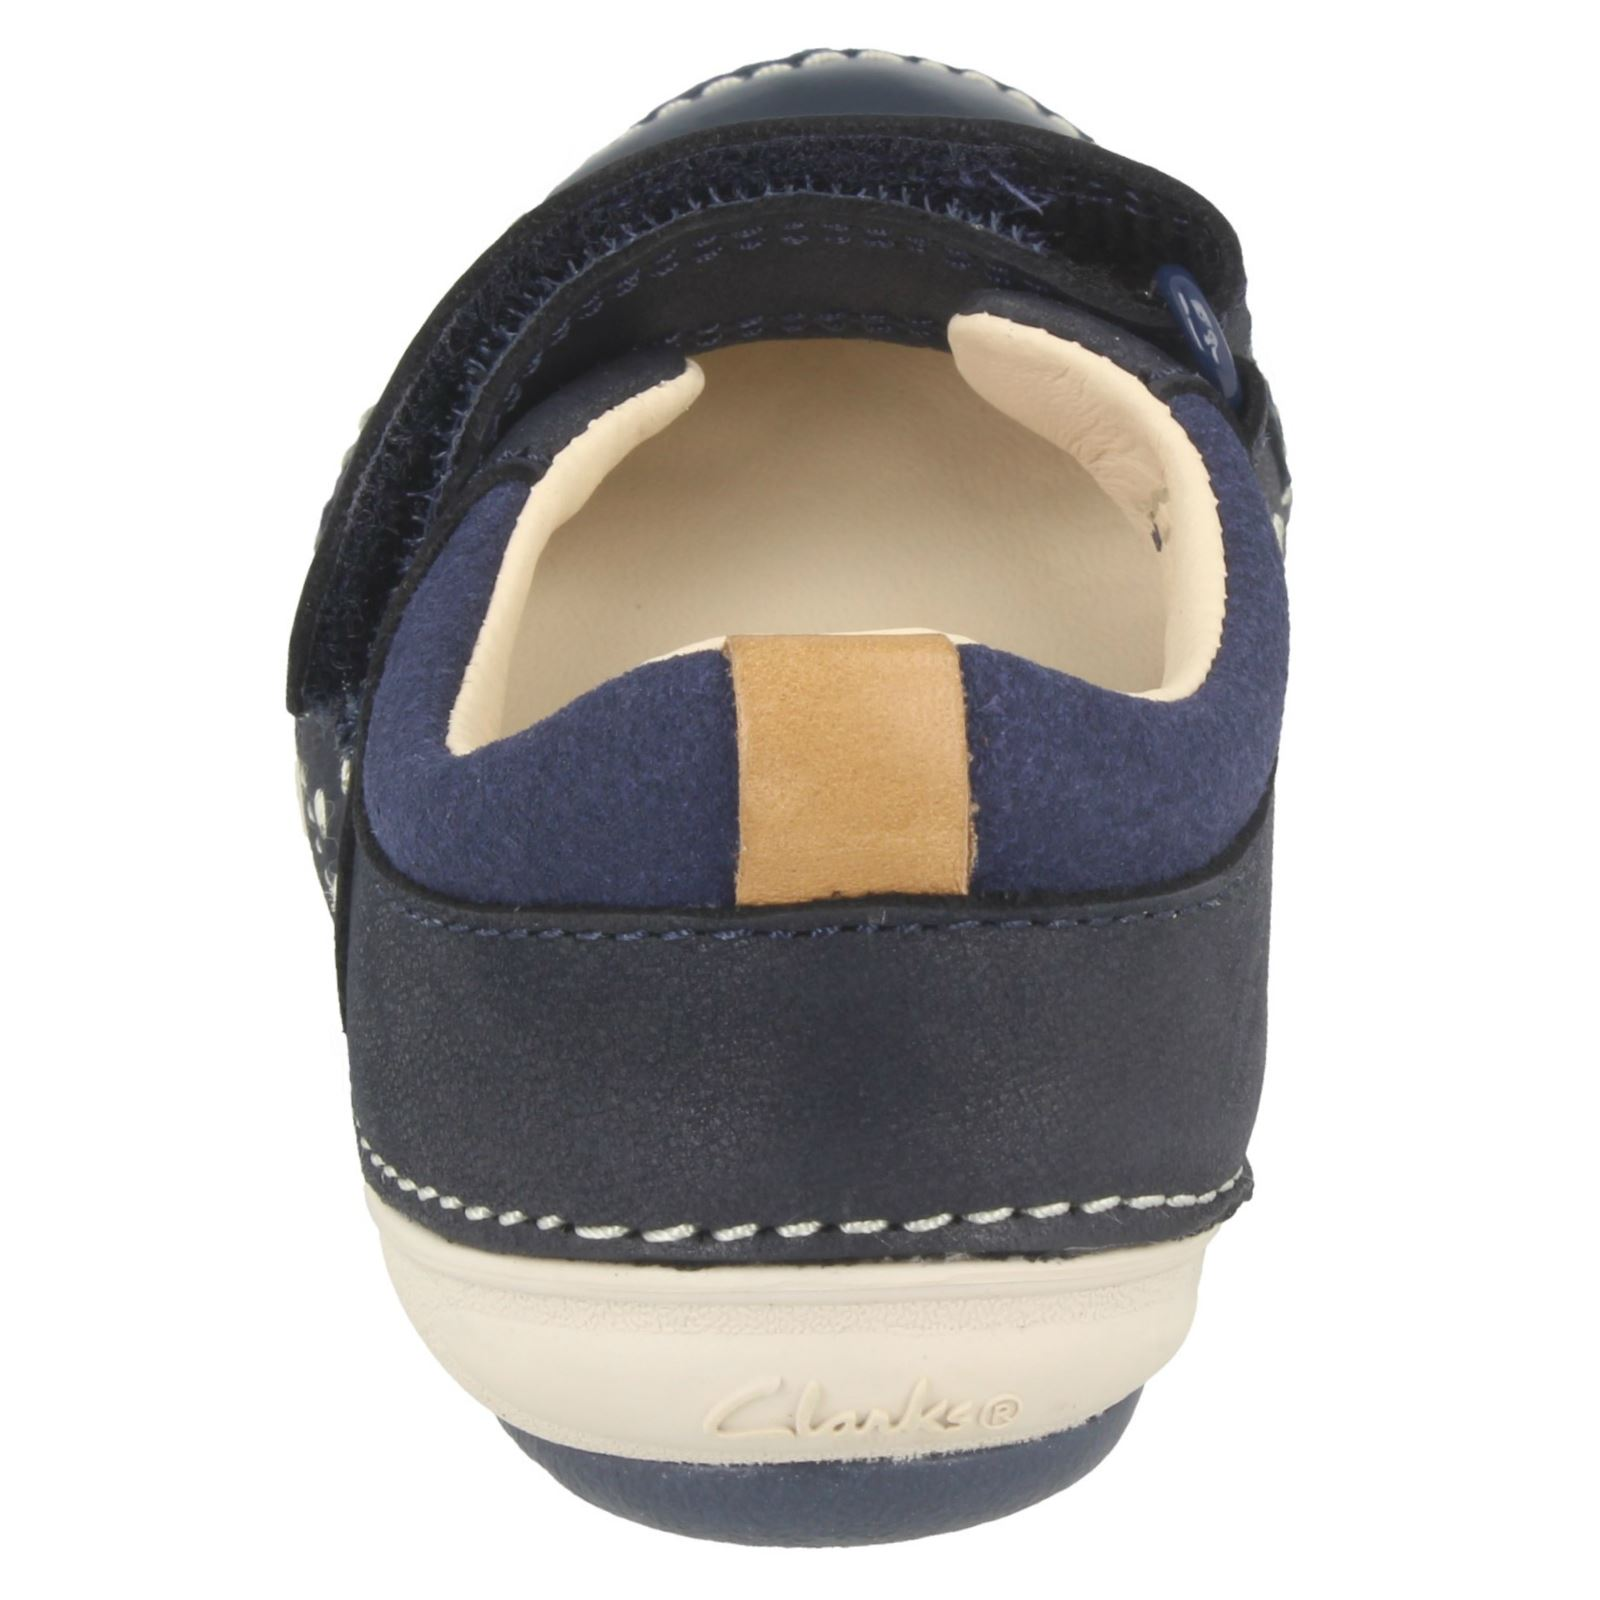 Clarks Girls First Shoes Casual Flats Softly Lou